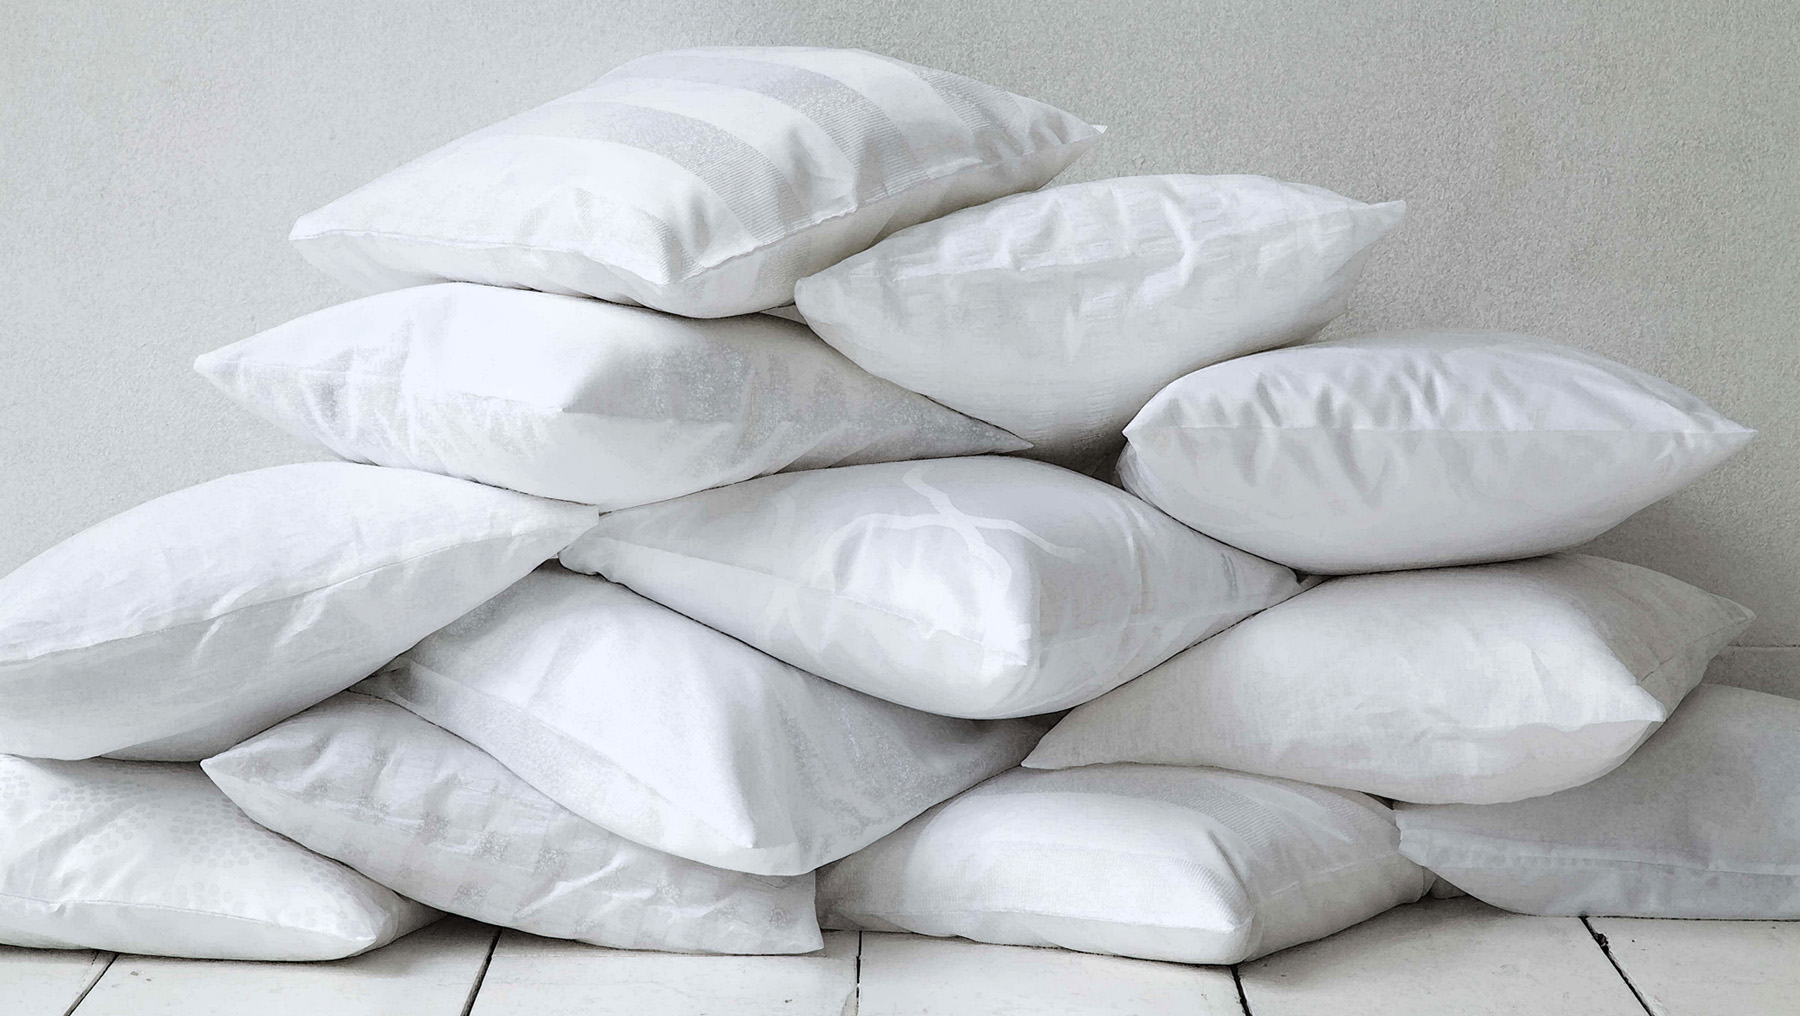 Sound sleep with many pillows